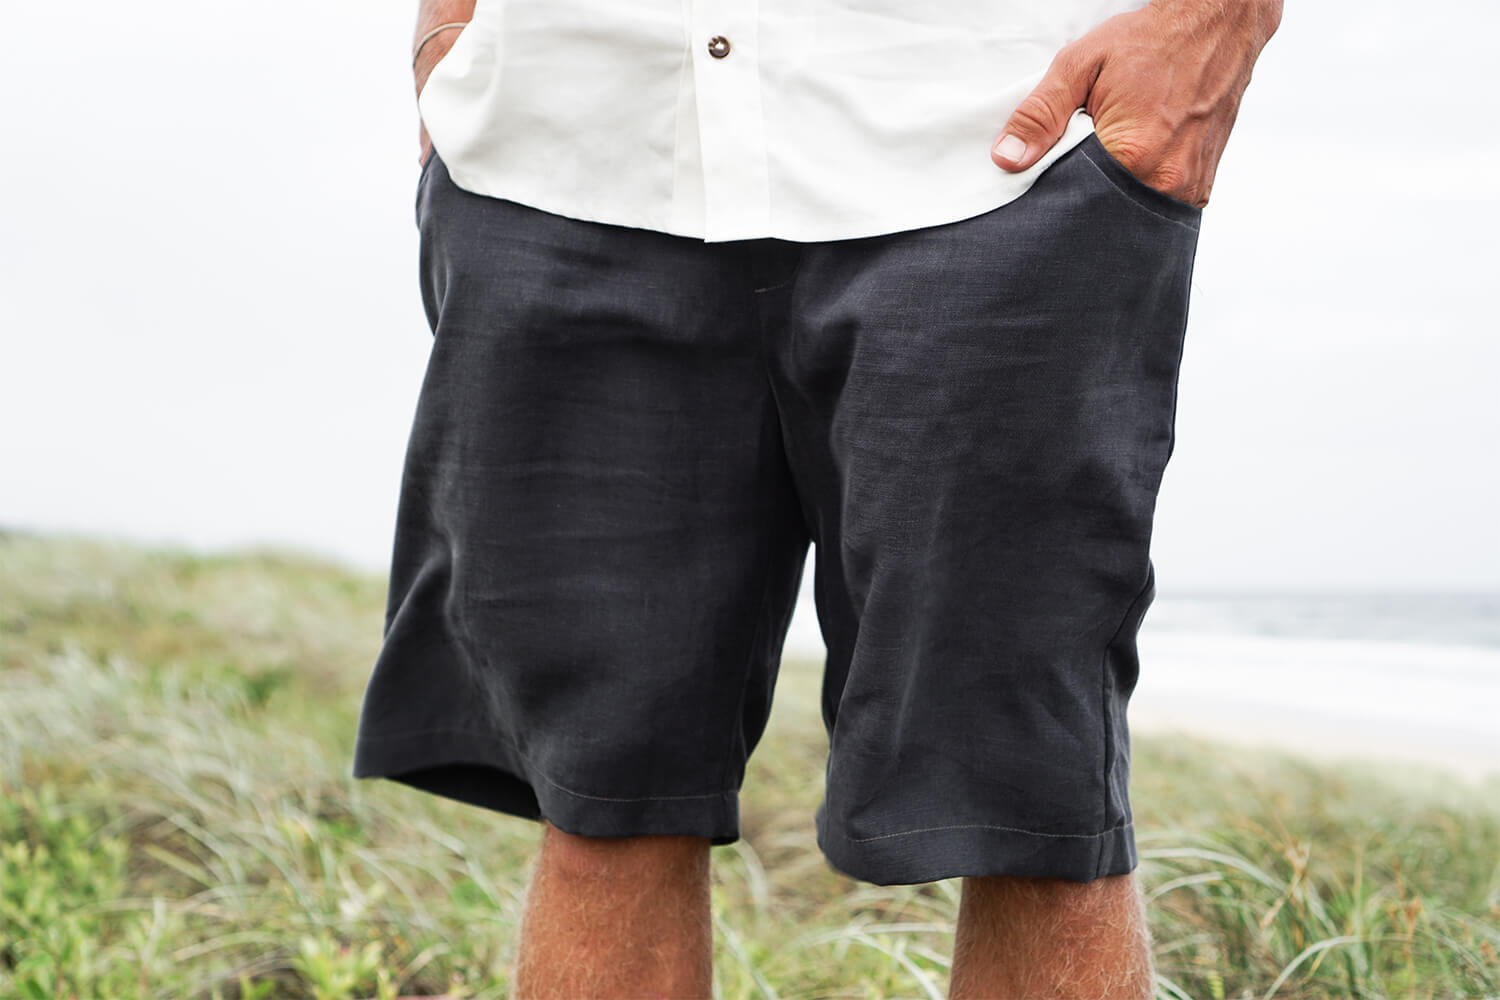 Tasi Travels' Men's Charcoal Roamer Shorts are handmade from a sustainable blend of Tencel & Hemp